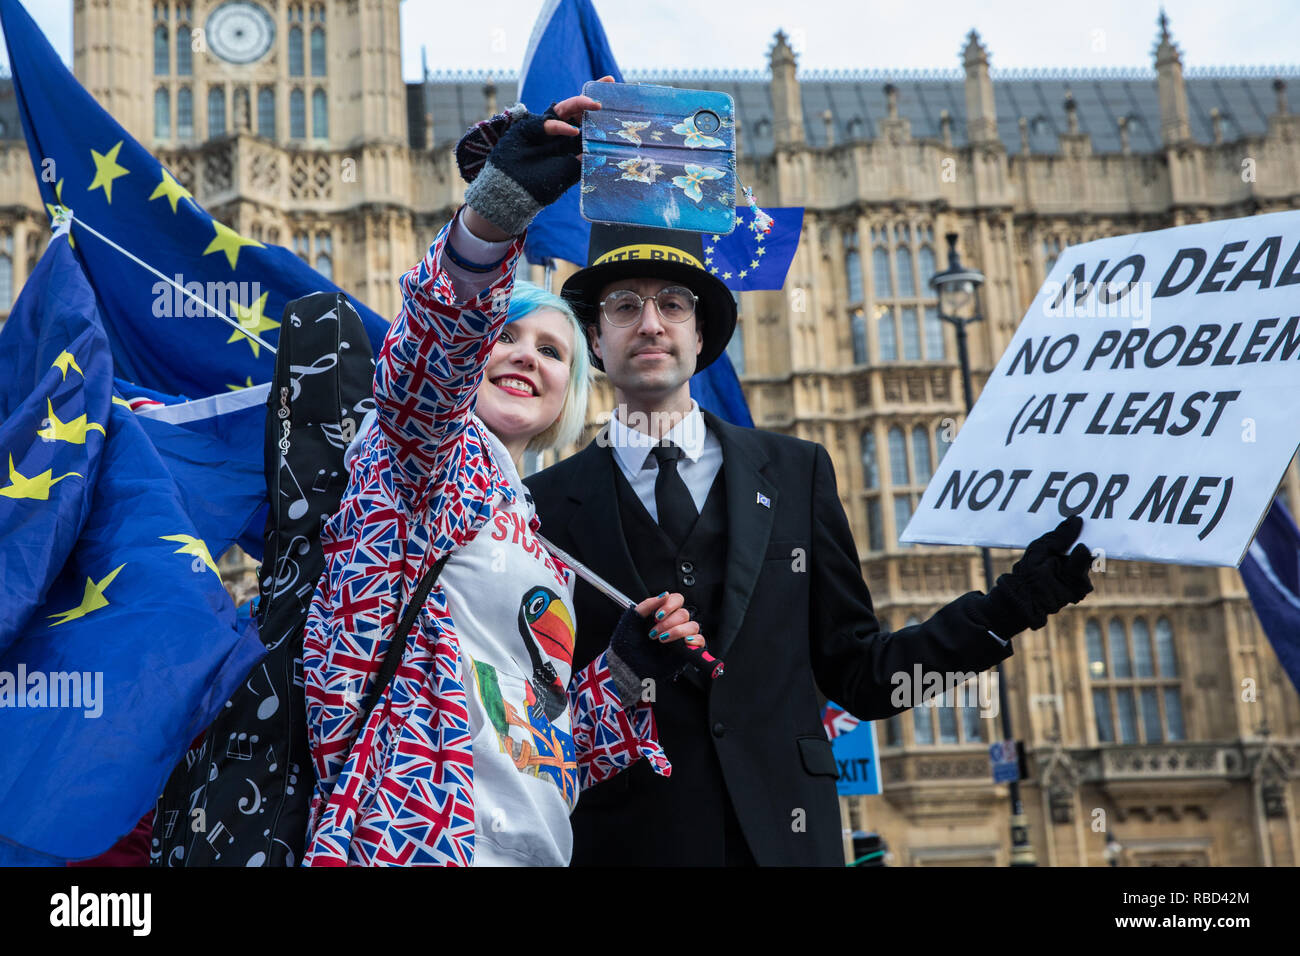 London, UK. 9th Jan, 2019. EU Supergirl Madeleina Kay stands with a fellow anti-Brexit activist disguised as Jacob Rees-Mogg and carrying a sign reading 'My Money's on Brexit My Money's in Ireland' during a protest by pro-EU group SODEM (Stand of Defiance European Movement) outside Parliament on the first day of the debate in the House of Commons on Prime Minister Theresa May's proposed Brexit withdrawal agreement. Credit: Mark Kerrison/Alamy Live News - Stock Image